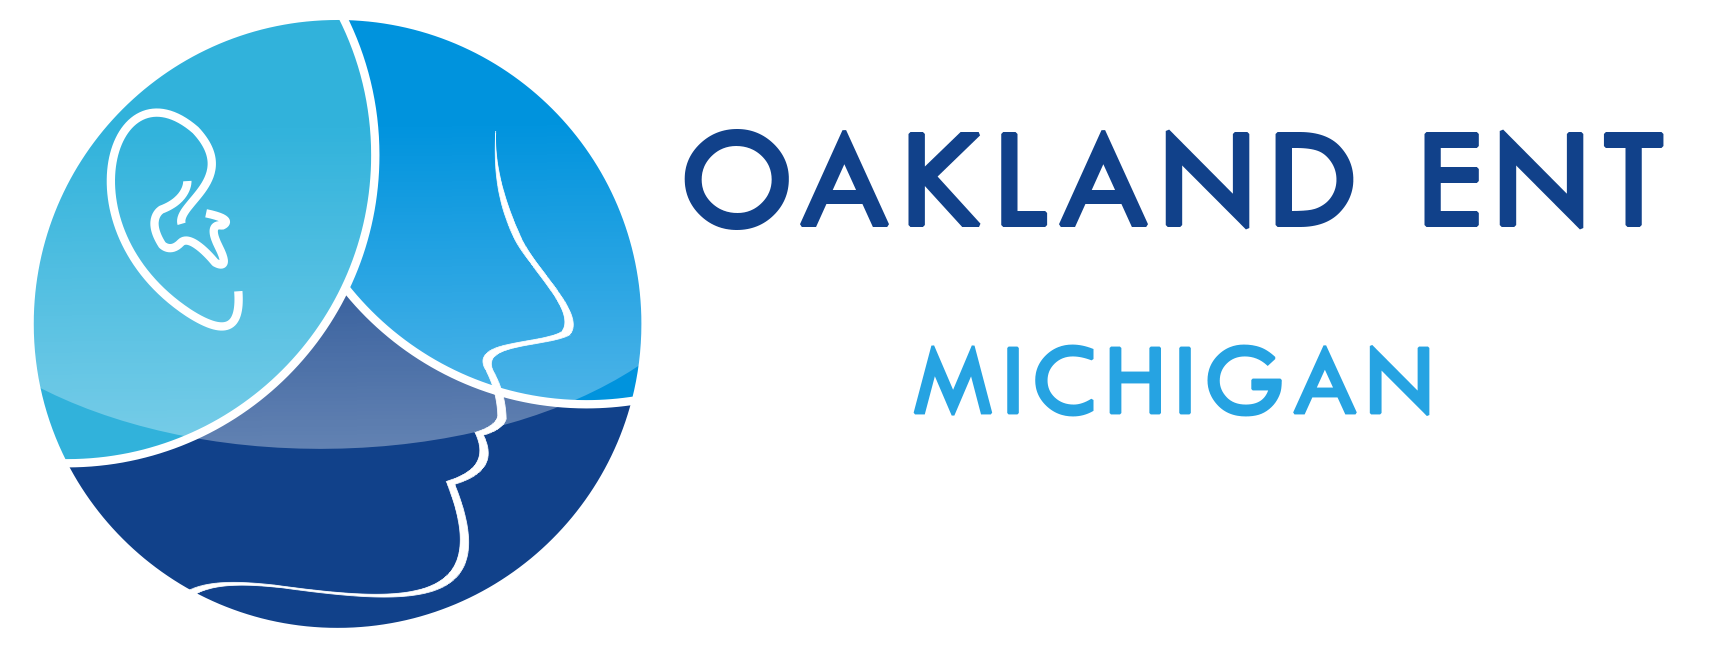 Oakland ENT – Michigan